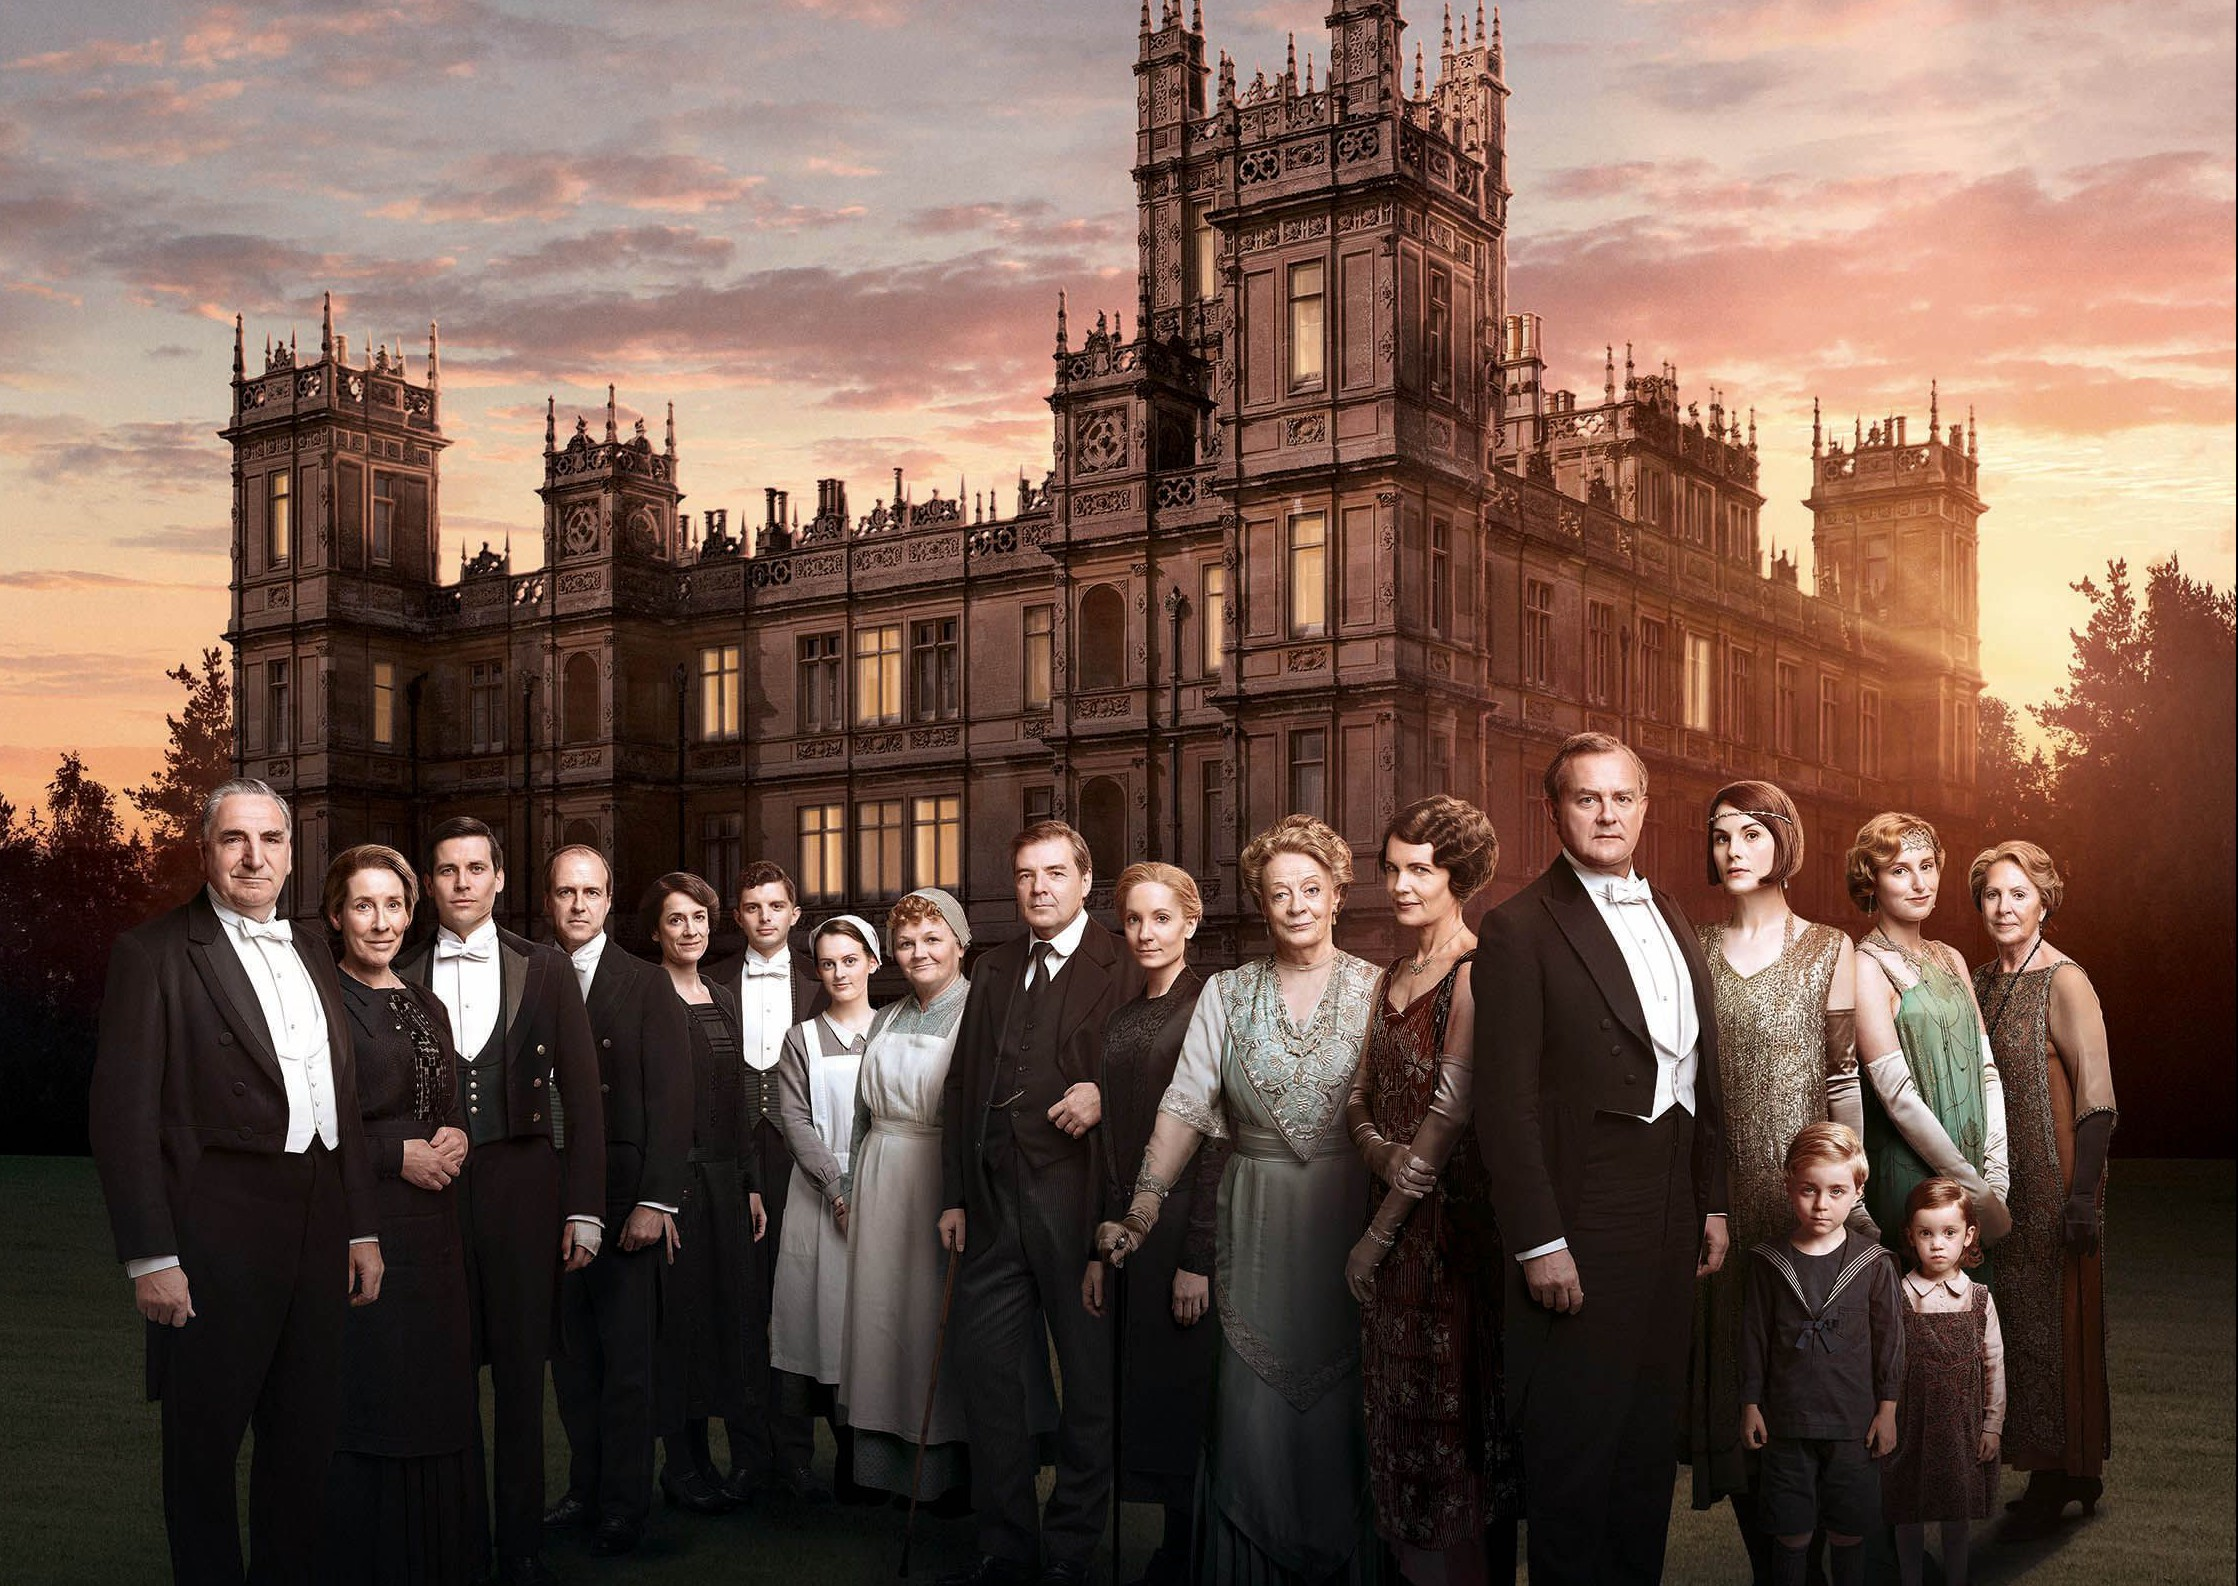 Downton Abbey season 6: Where did we leave the family and their servants?